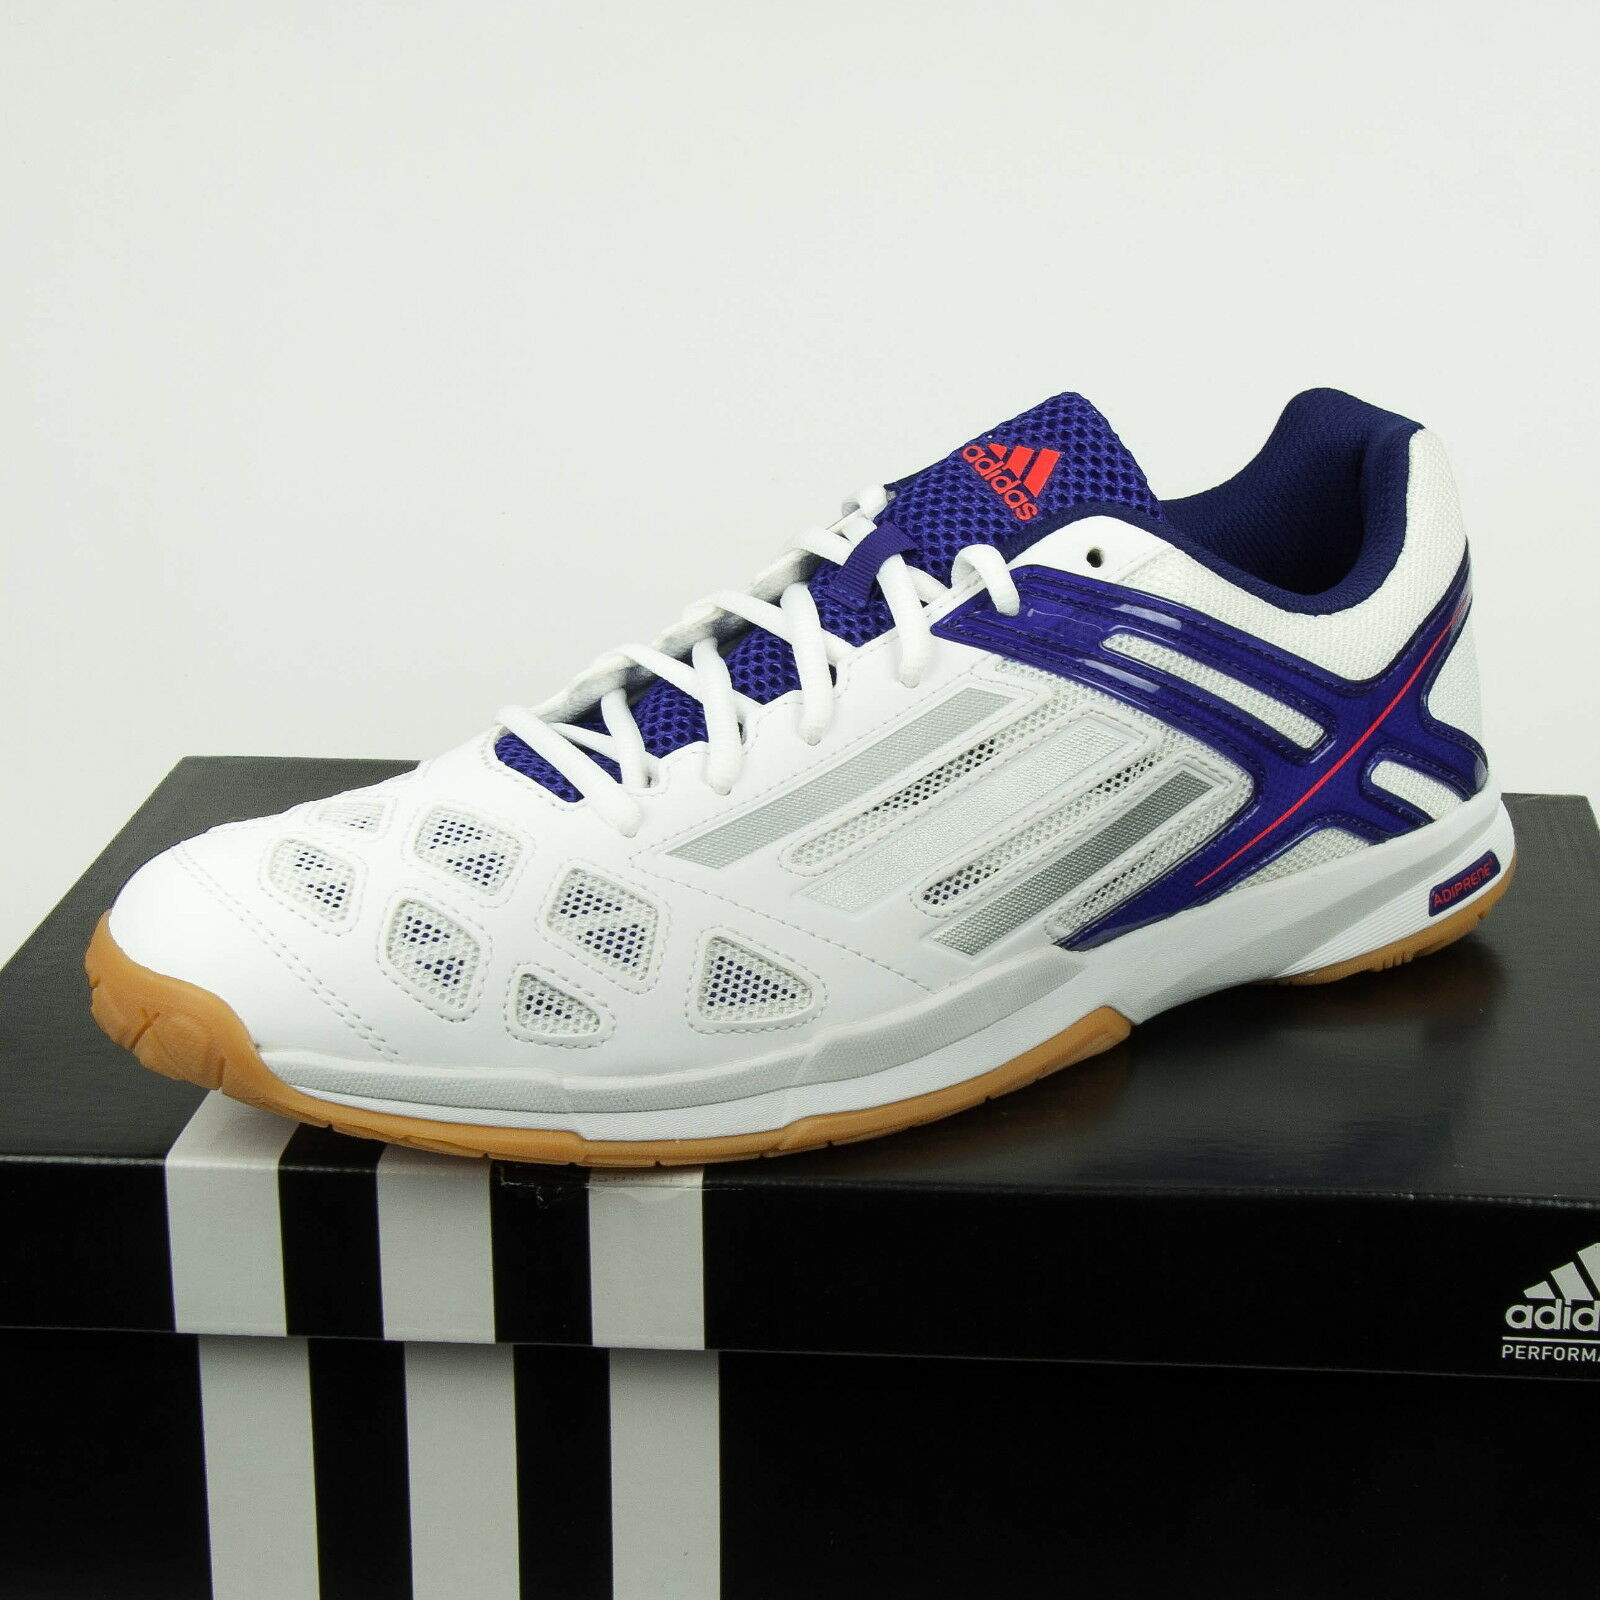 info for efcdb 35368 Adidas Feather Team Herren Hallenschuhe Badminton Sportschuhe B40155